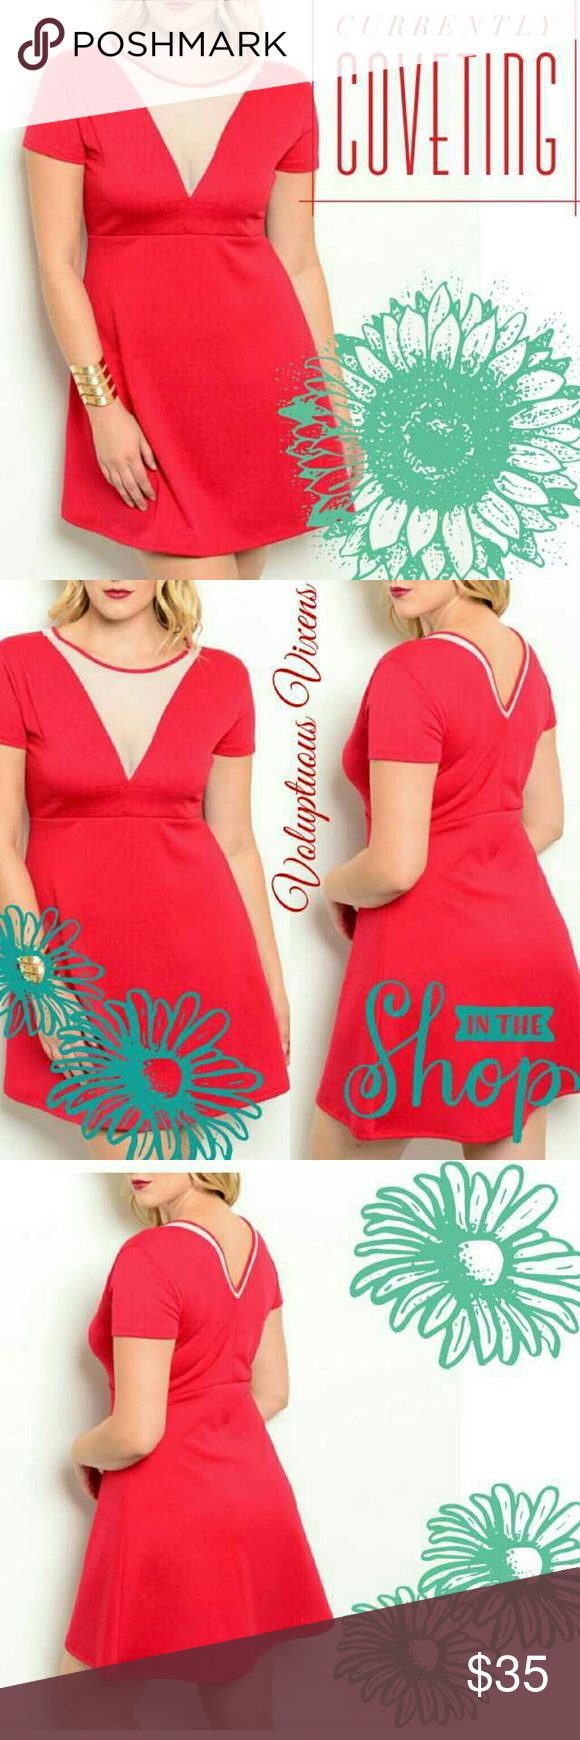 COMING SOON! Plus Size Retro Style Red Mini Dress Absolutely darling retro style dress with mesh v neckline. Puts me in mind of a diner uniform from the 70's! More information to come! Measurements: coming soon! Thanks for looking and Happy Poshing! Lynnette Dresses Mini